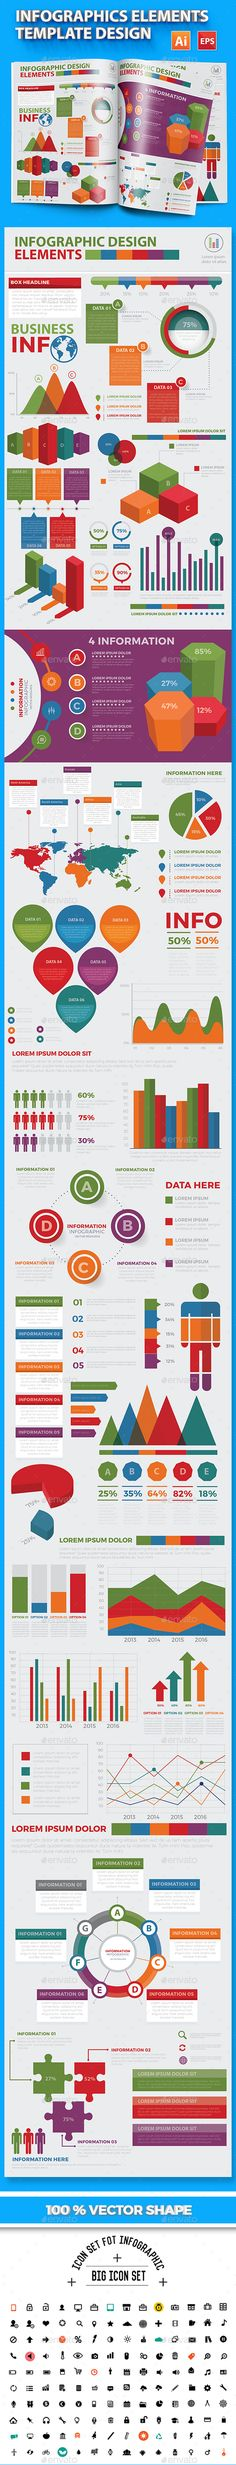 Modern Infographic elements design - Infographics Download here : https://graphicriver.net/item/modern-infographic-elements-design/17733565?s_rank=557&ref=Al-fatih